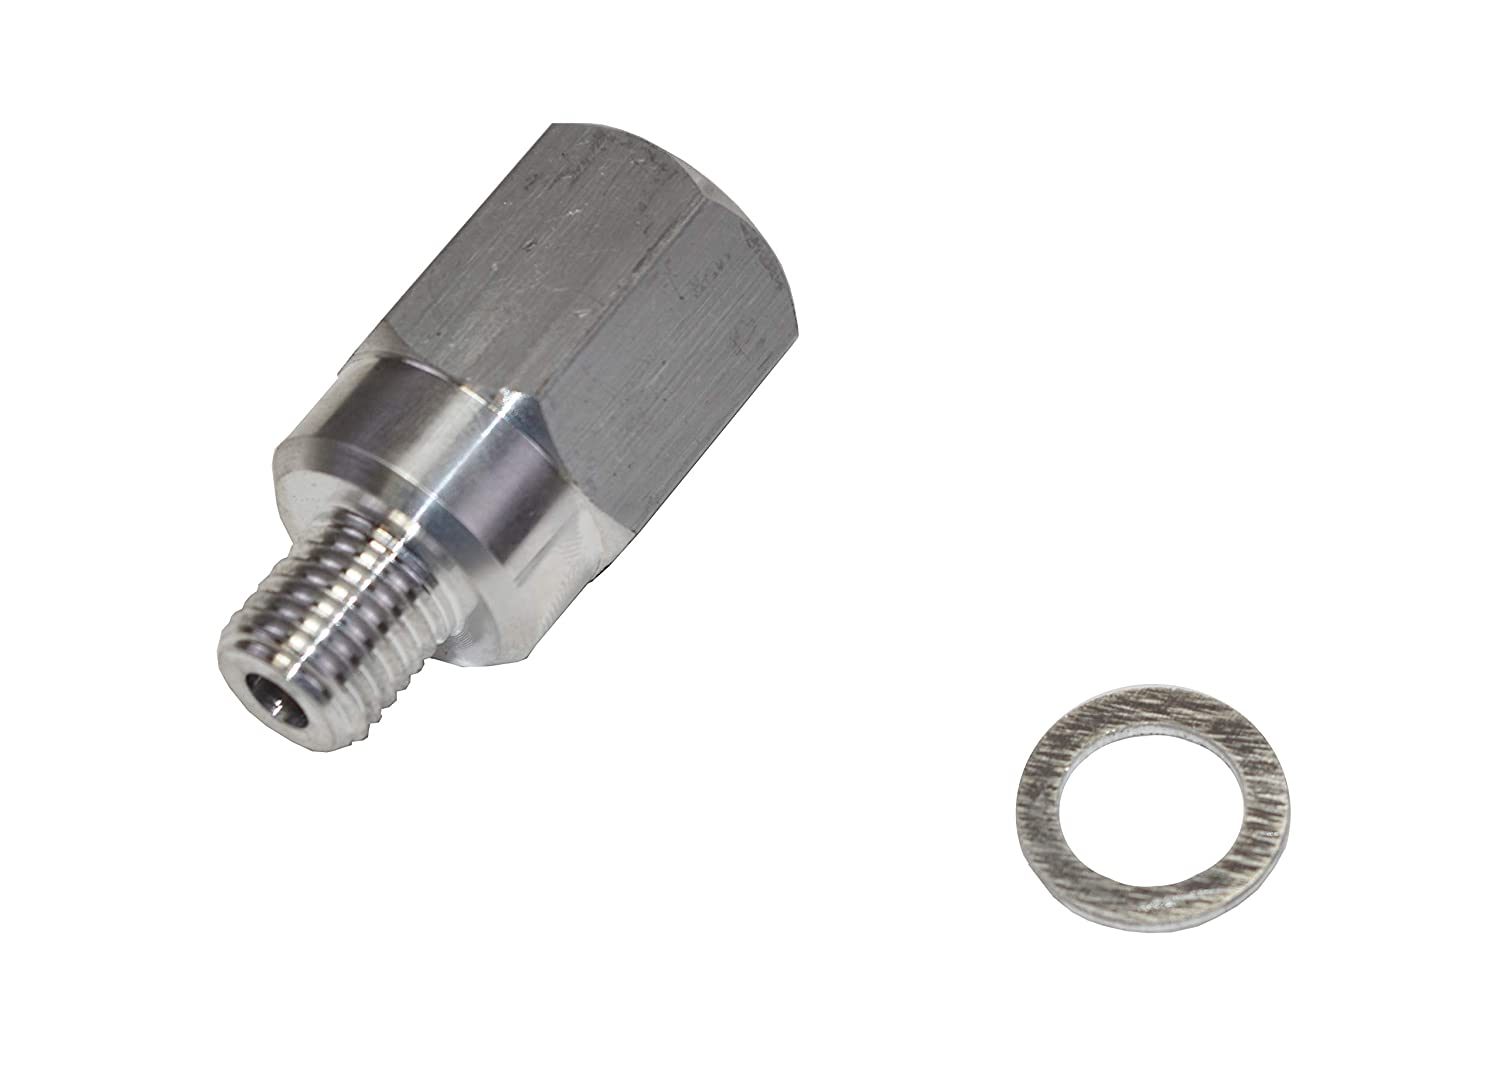 A-Team Performance Coolant Temperature Sensor Water LS Engine Swap M12 1.5 Adapter to 3//8 NPT Fittings Compatible with LS1 LSX LS3 179